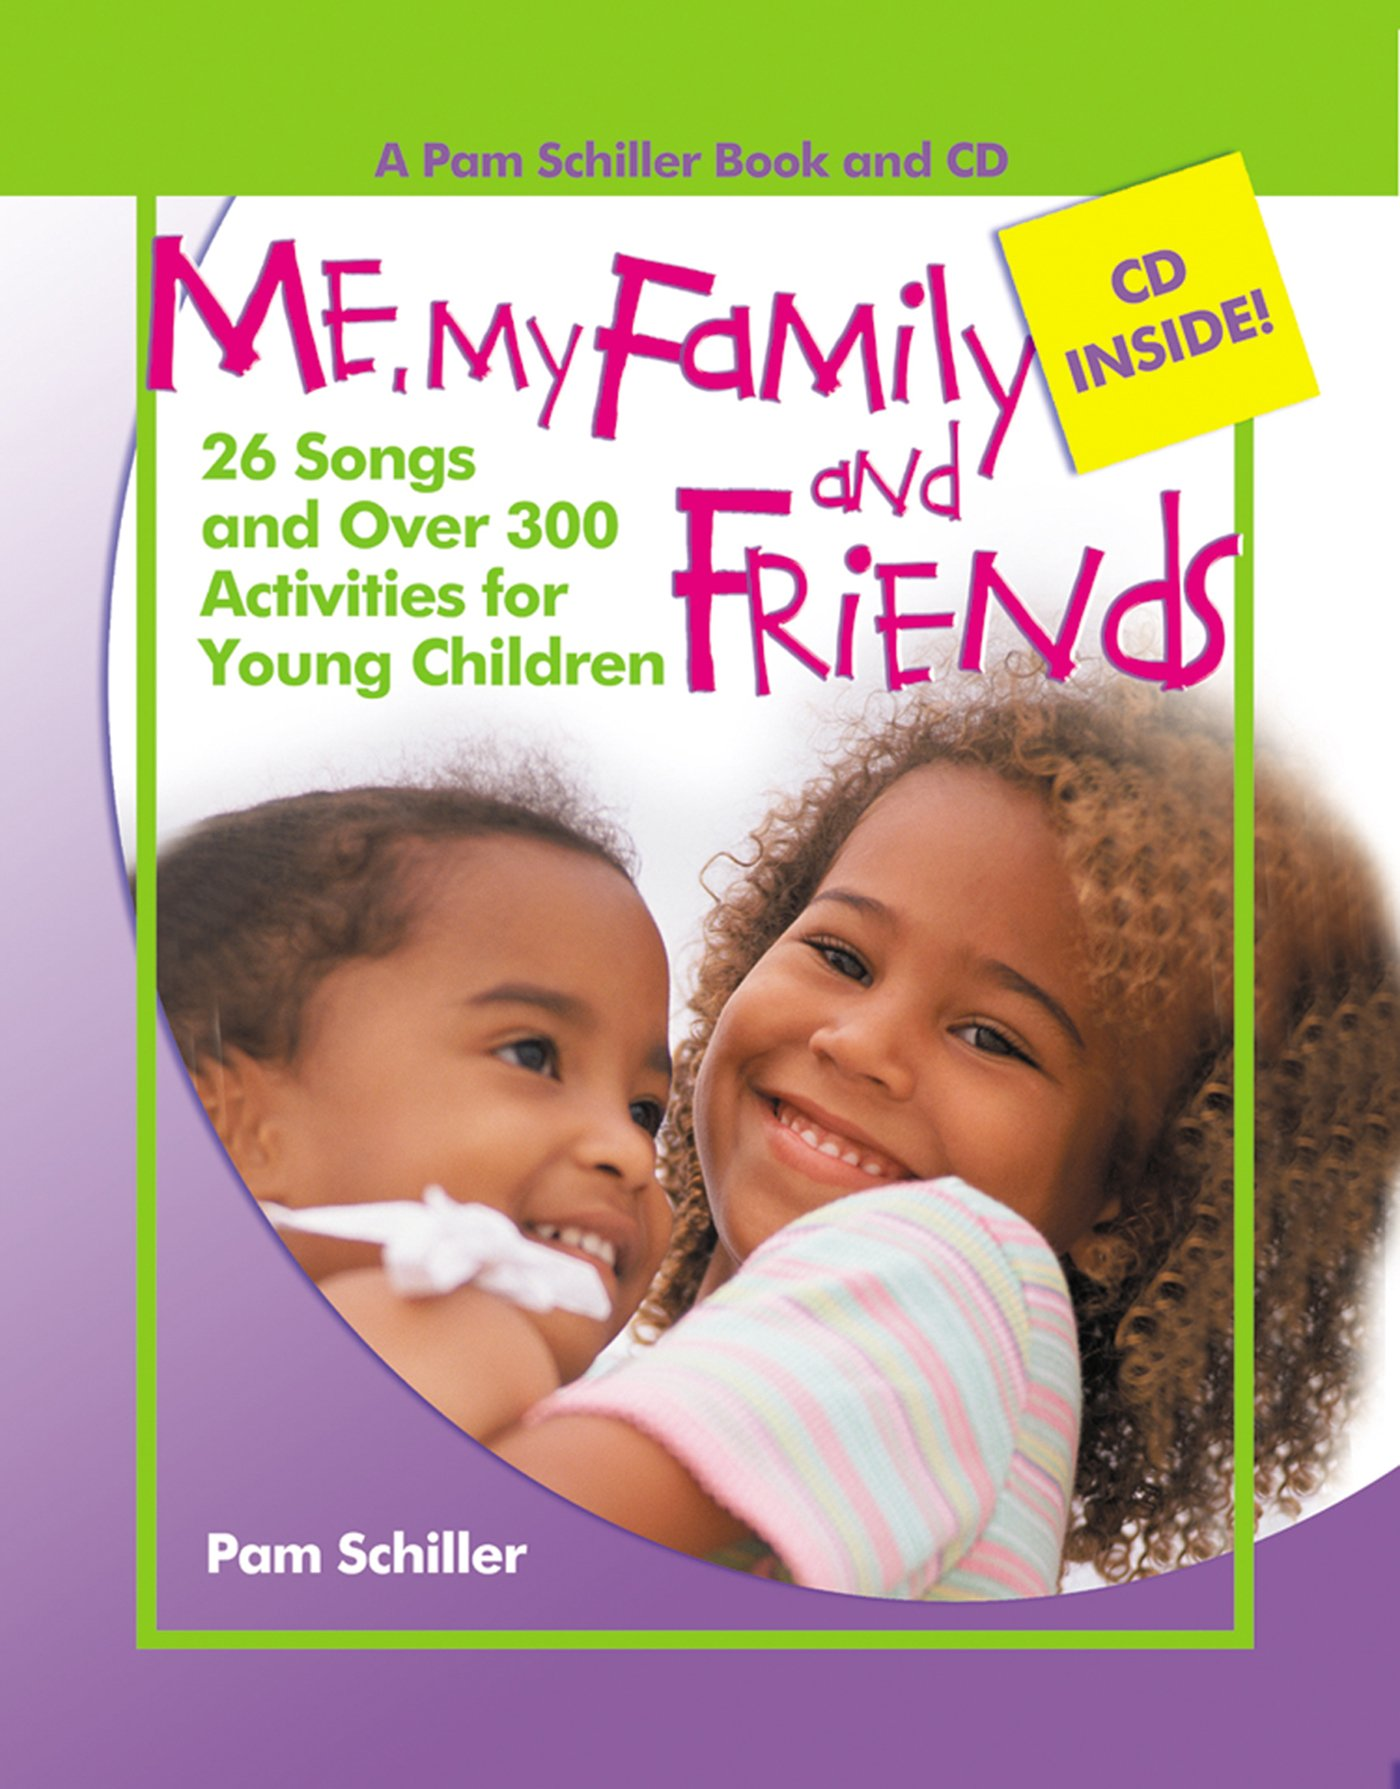 Me, My Family, and Friends: 26 Songs and Over 300 Activities for Young Children (Pam Schiller Theme Series)